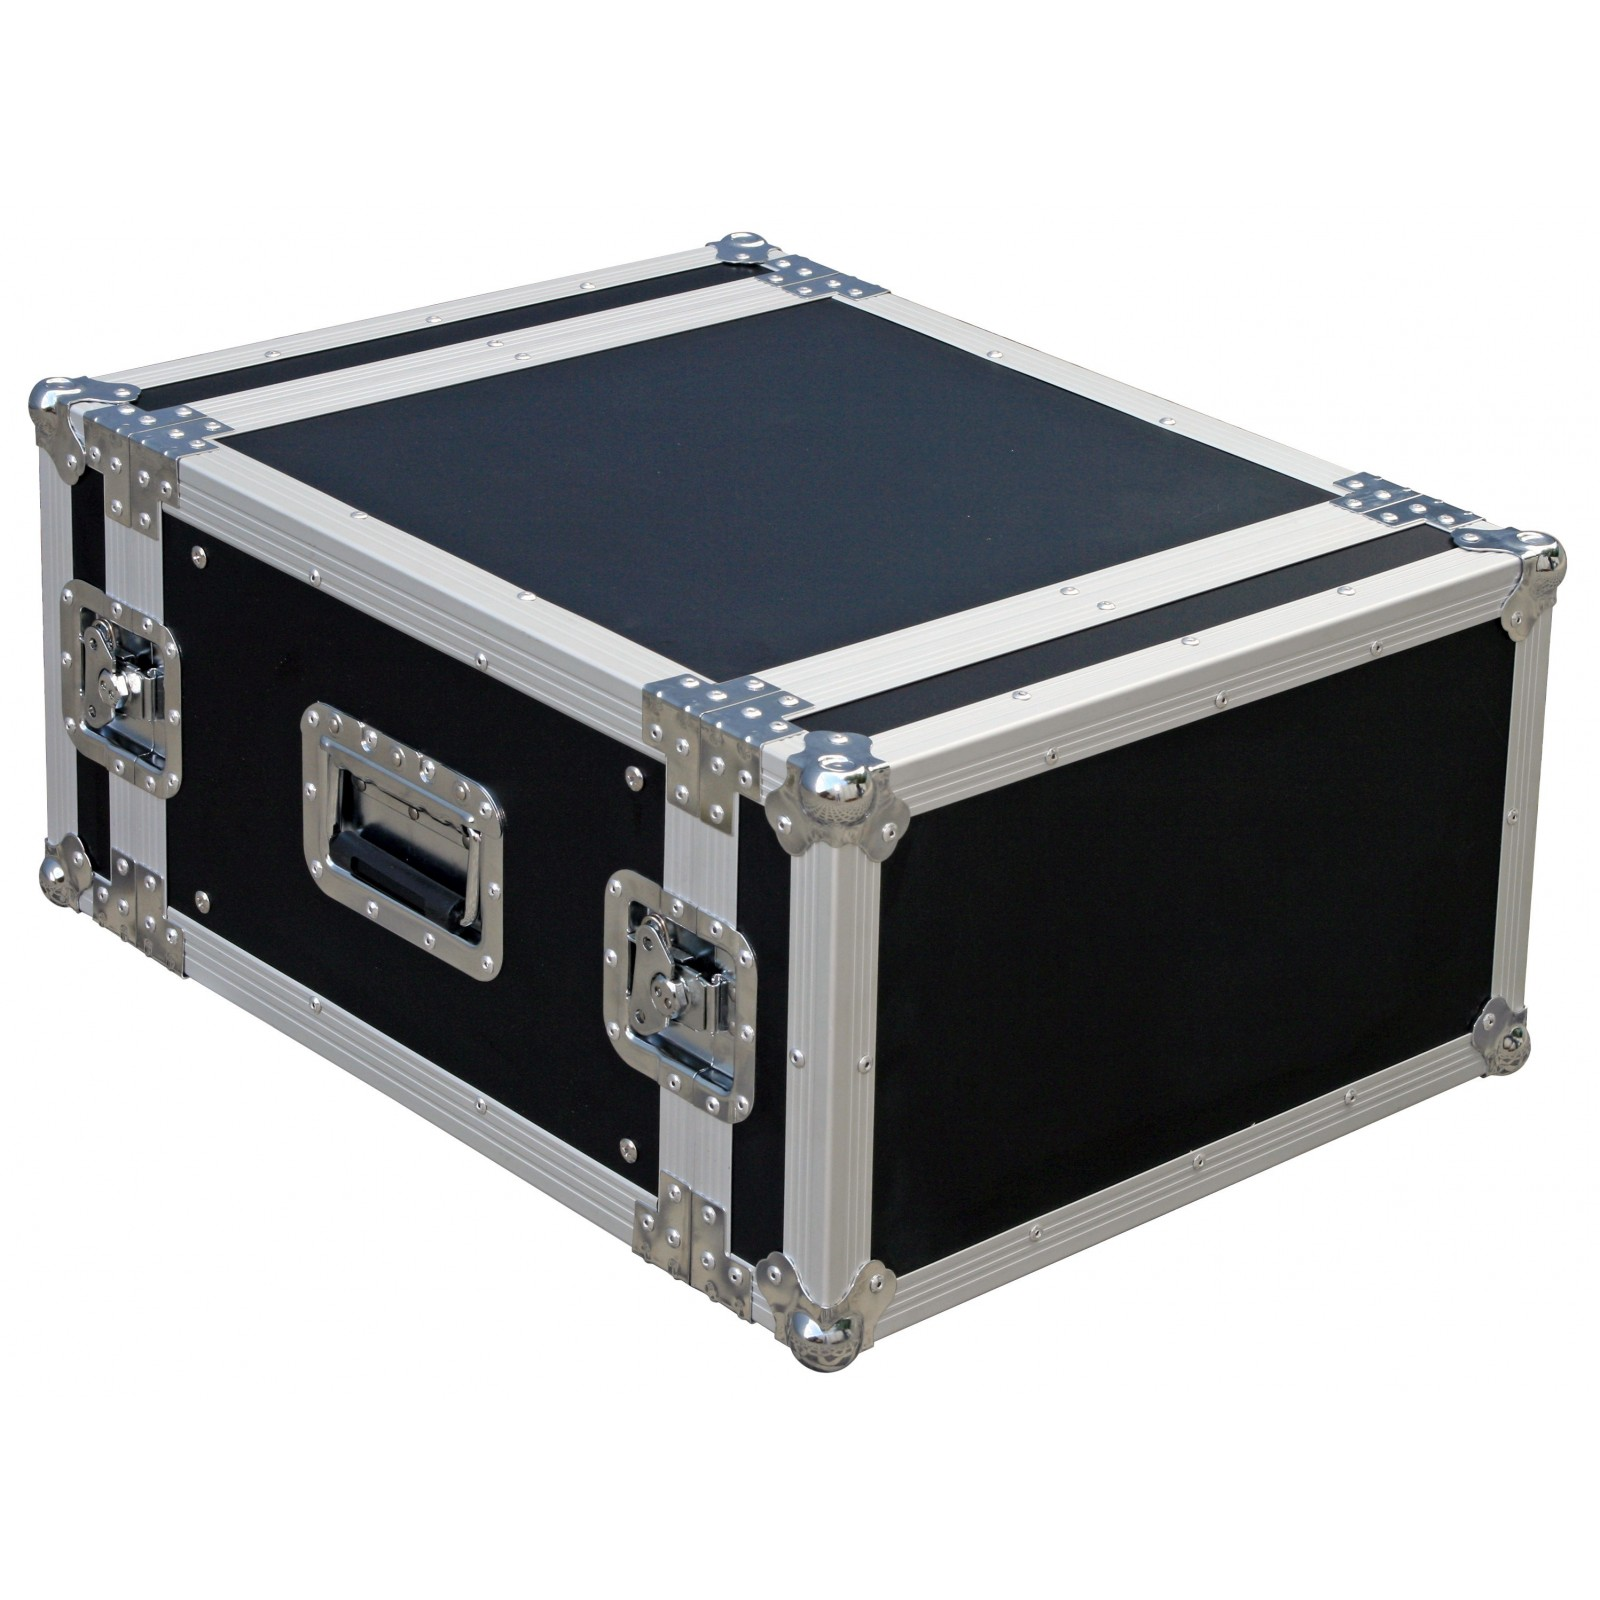 Jb Systems Rack Case 6u Flightcases